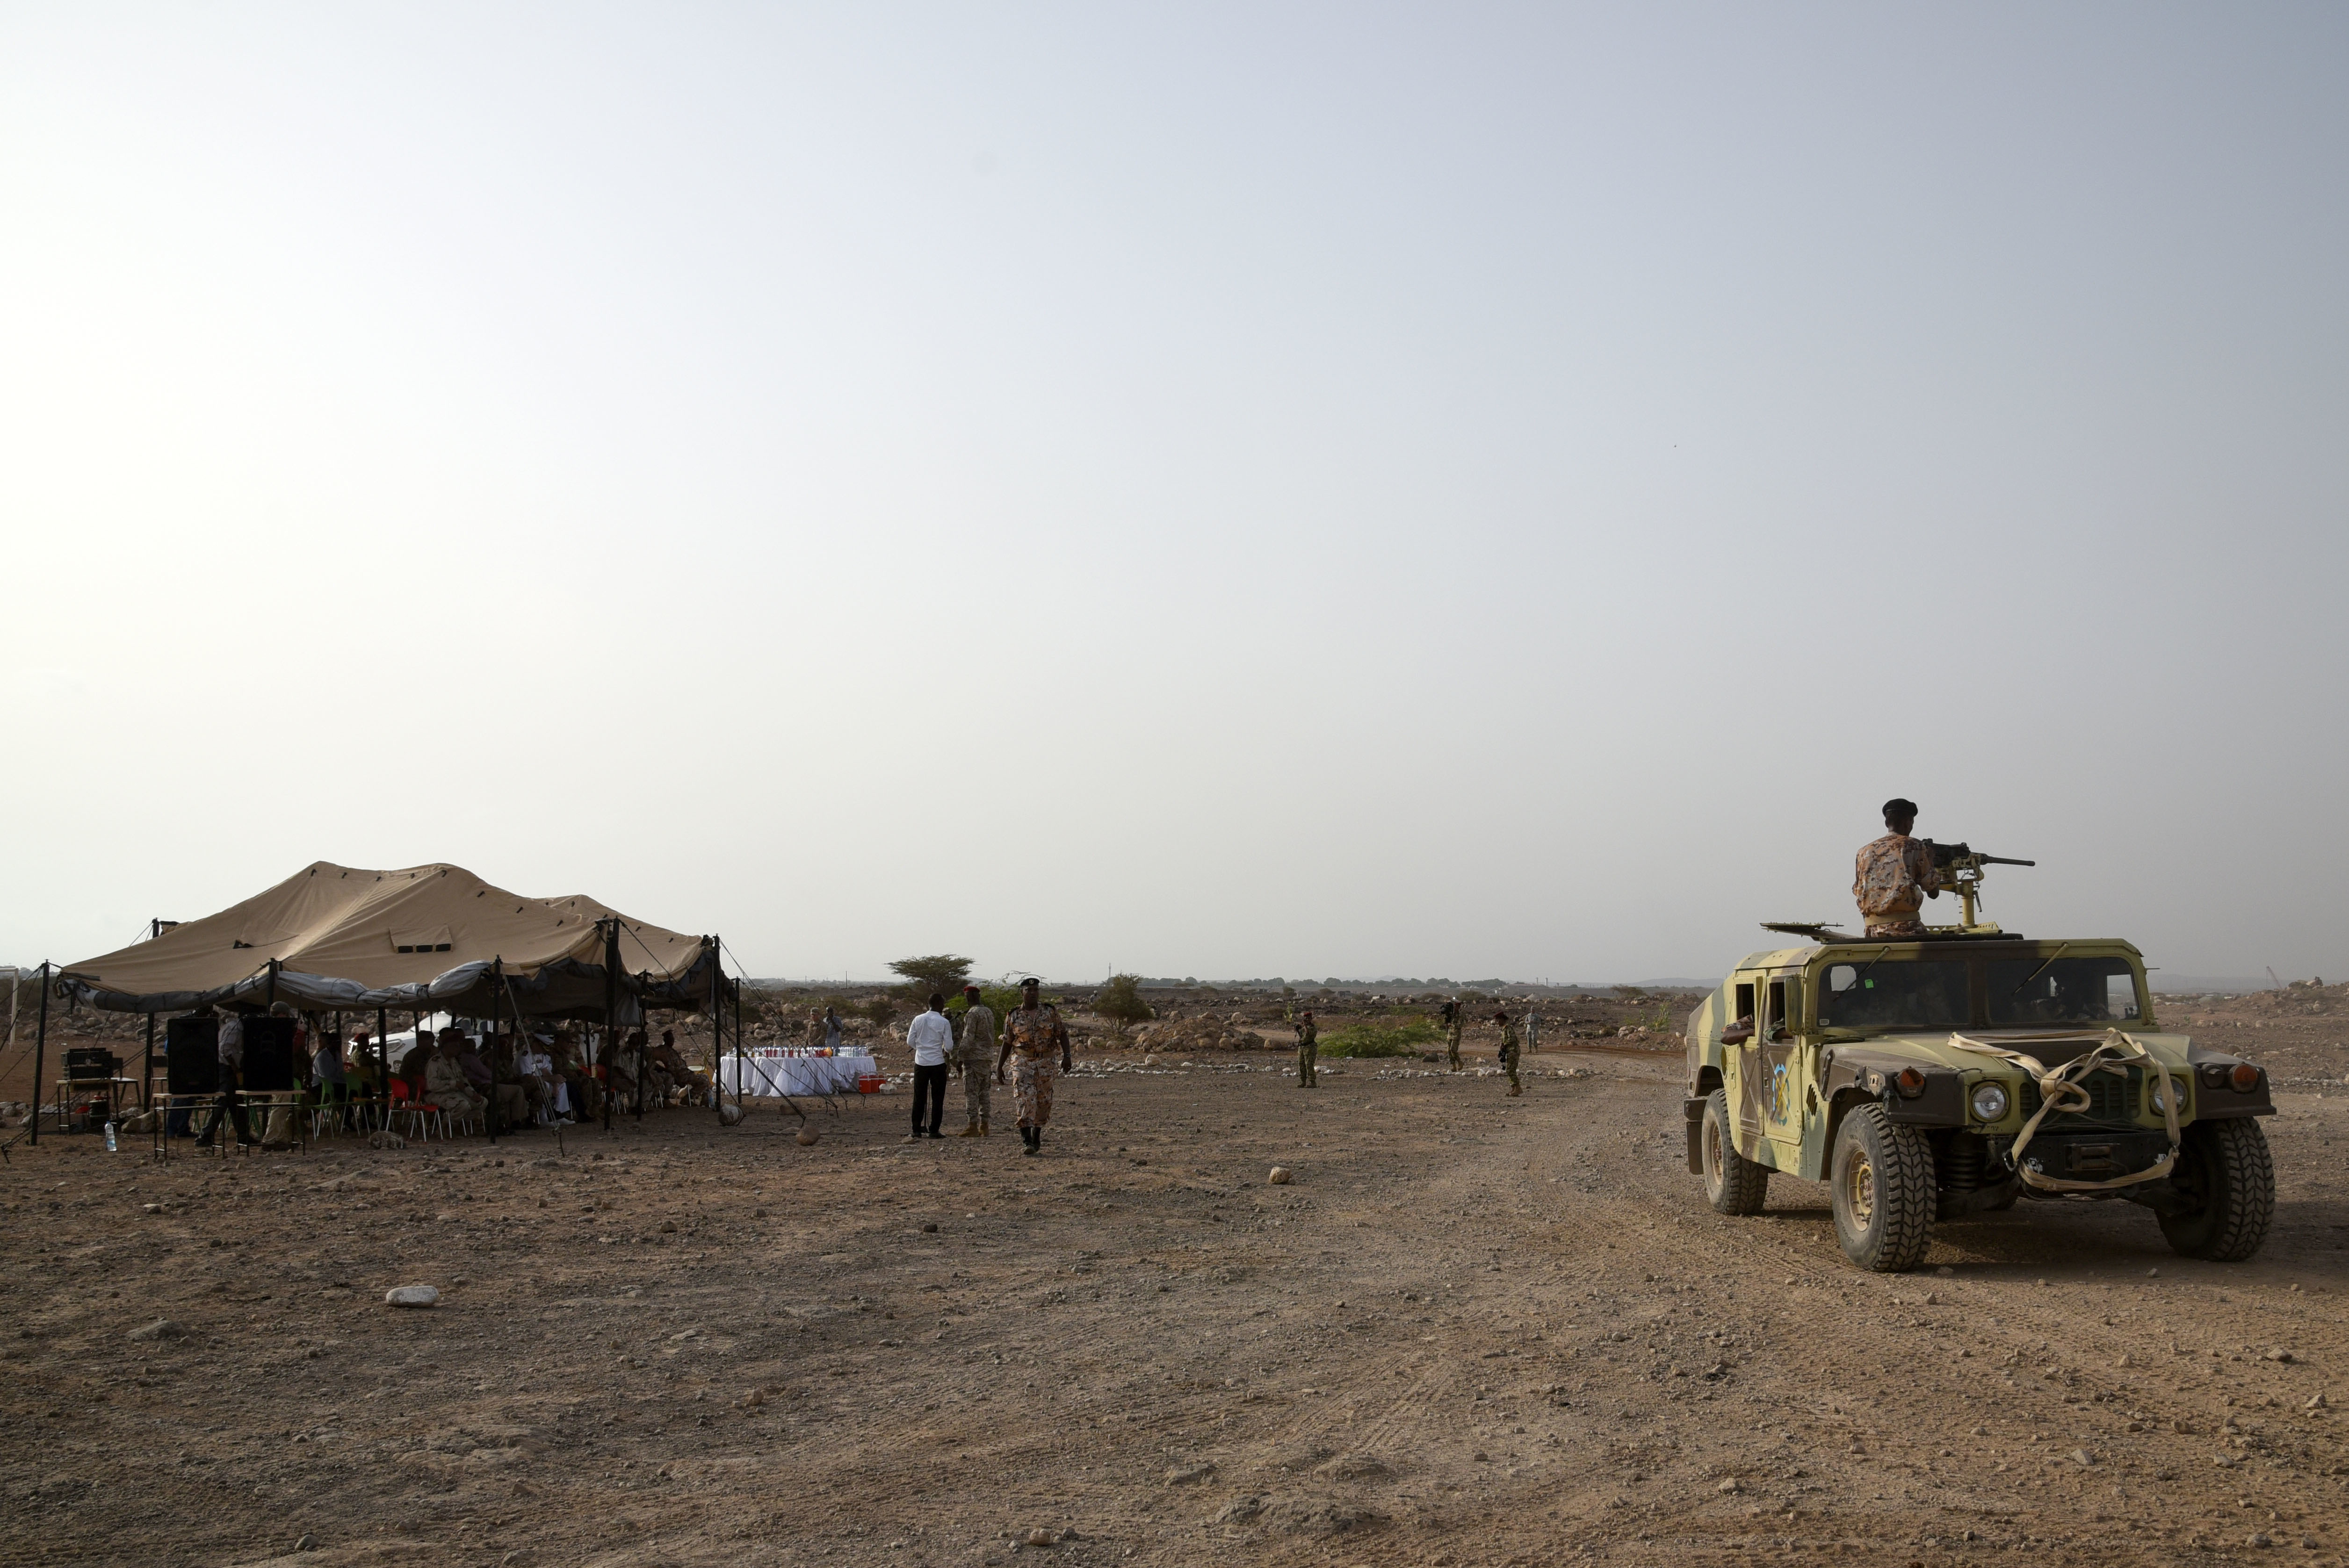 CAMP CHEIK OSMAN, Djibouti – Djiboutian Armed Forces(FAD) Soldiers demonstrate the collective skills they learned from a five month area logistics training instructed by U.S. Army Regionally Aligned Forces Soldiers at their training graduation, May 19, 2016, at Camp Cheik Osman, Djibouti. Beginning in January 2016, the FAD Soldiers learned basic logistics functions, supply, economy, warehouse operations, maintenance along with rifle marksmanship, convoy operations and heavy weapons. (U.S. Air Force photo by Staff Sgt. Tiffany DeNault/Released)